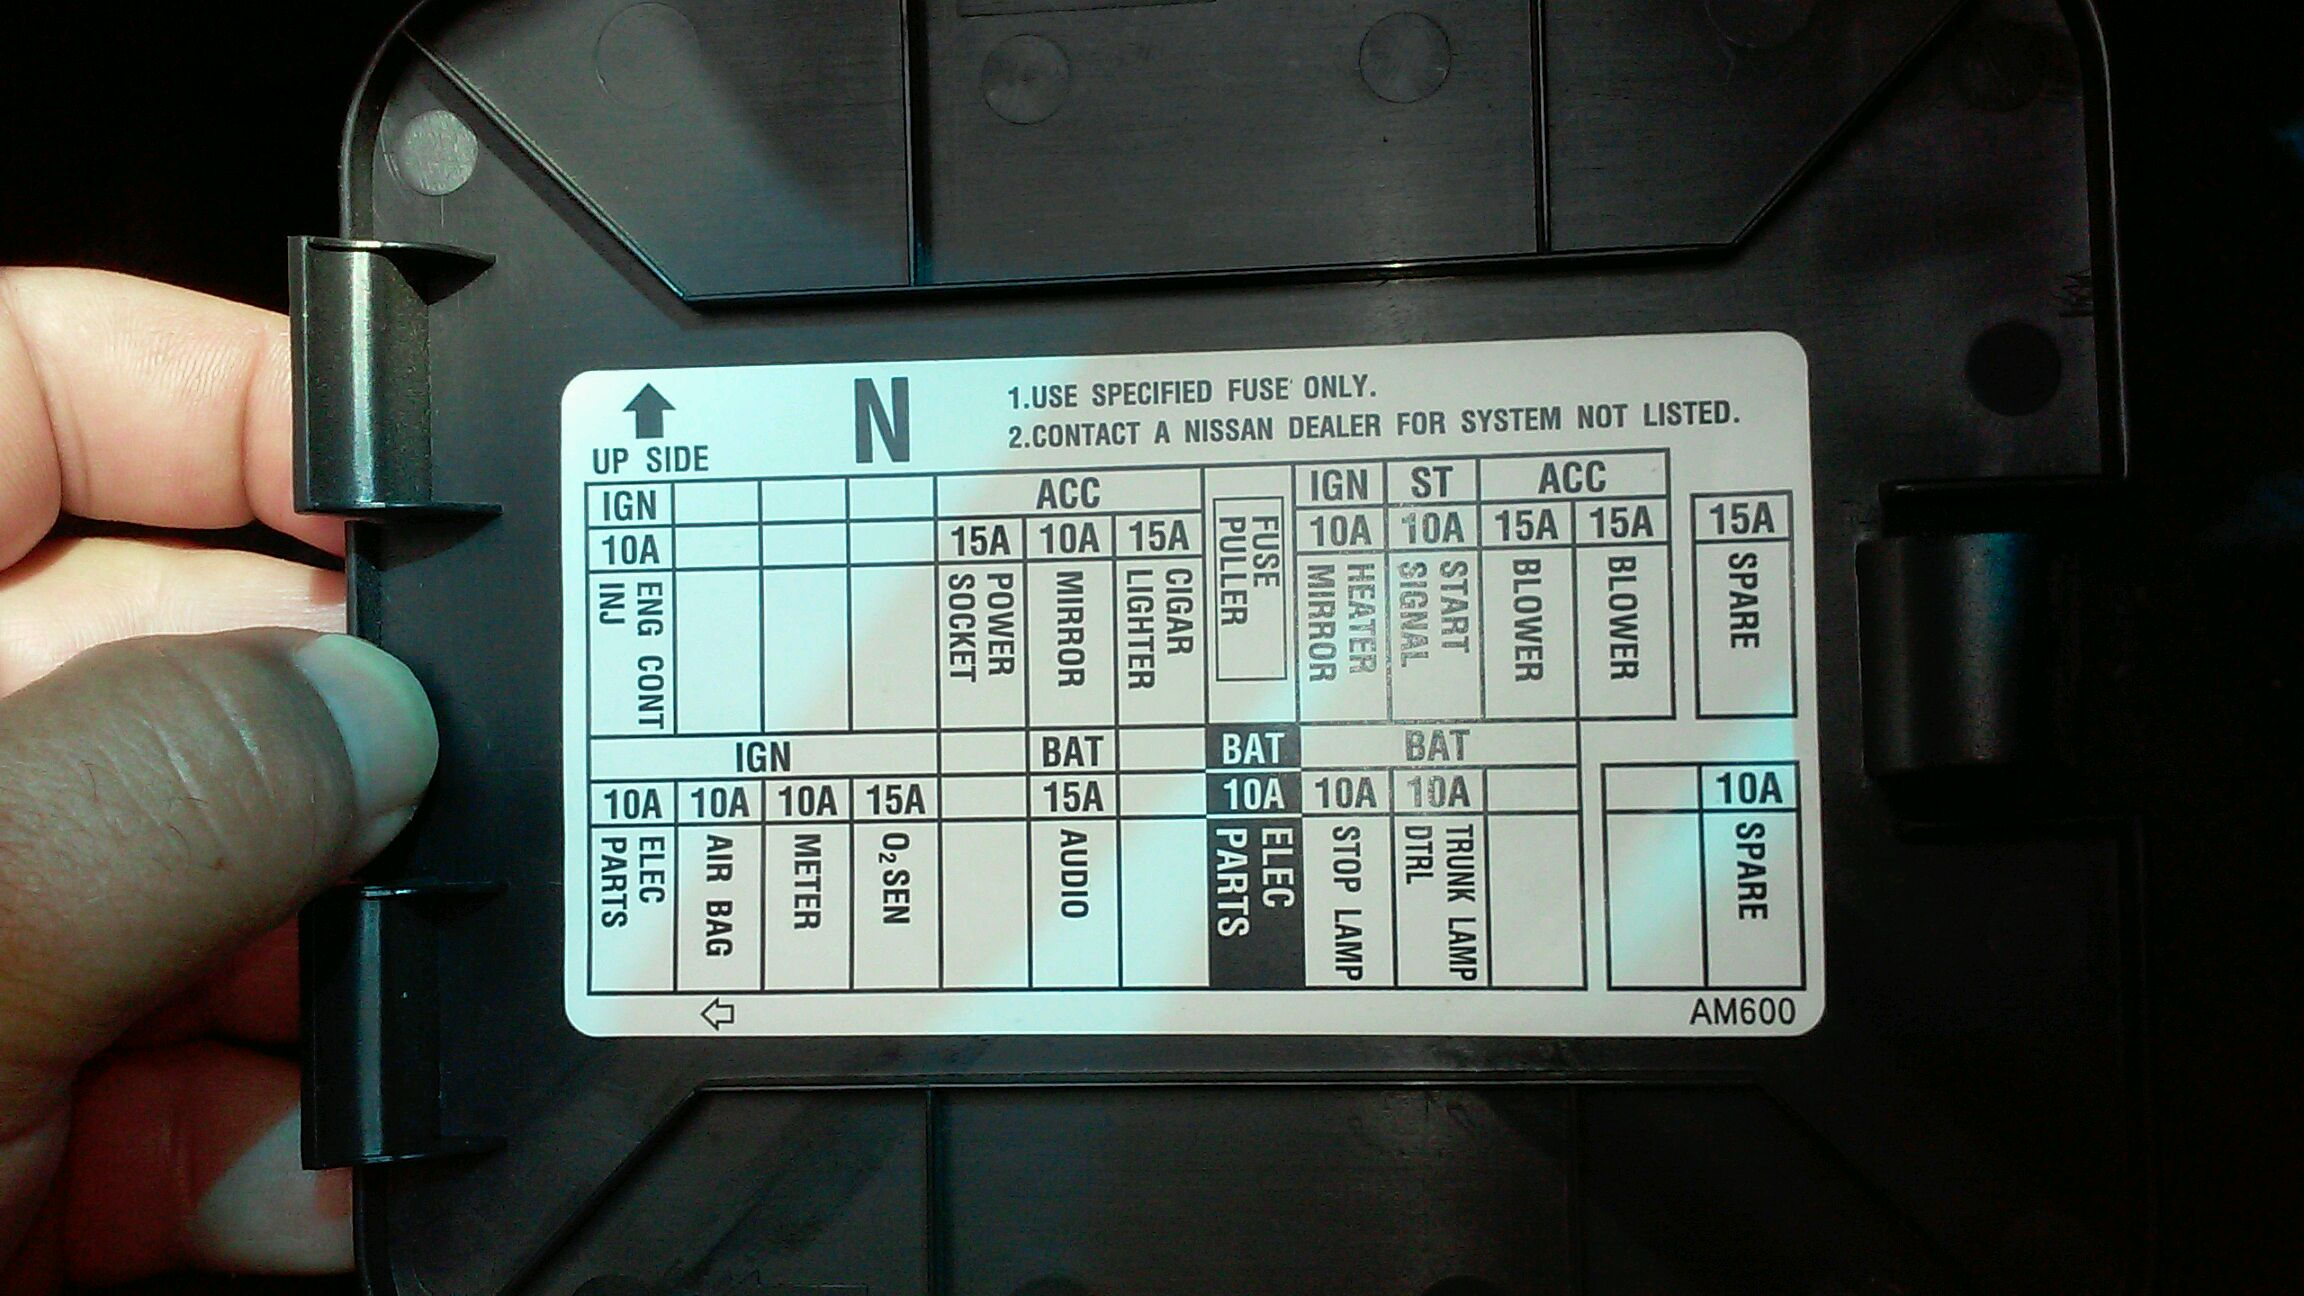 2006 Infiniti G35 Fuse Box Location 2004 Infiniti G35 Coupe Fuse Box  Diagram G35 Coupe Fuse Box Location